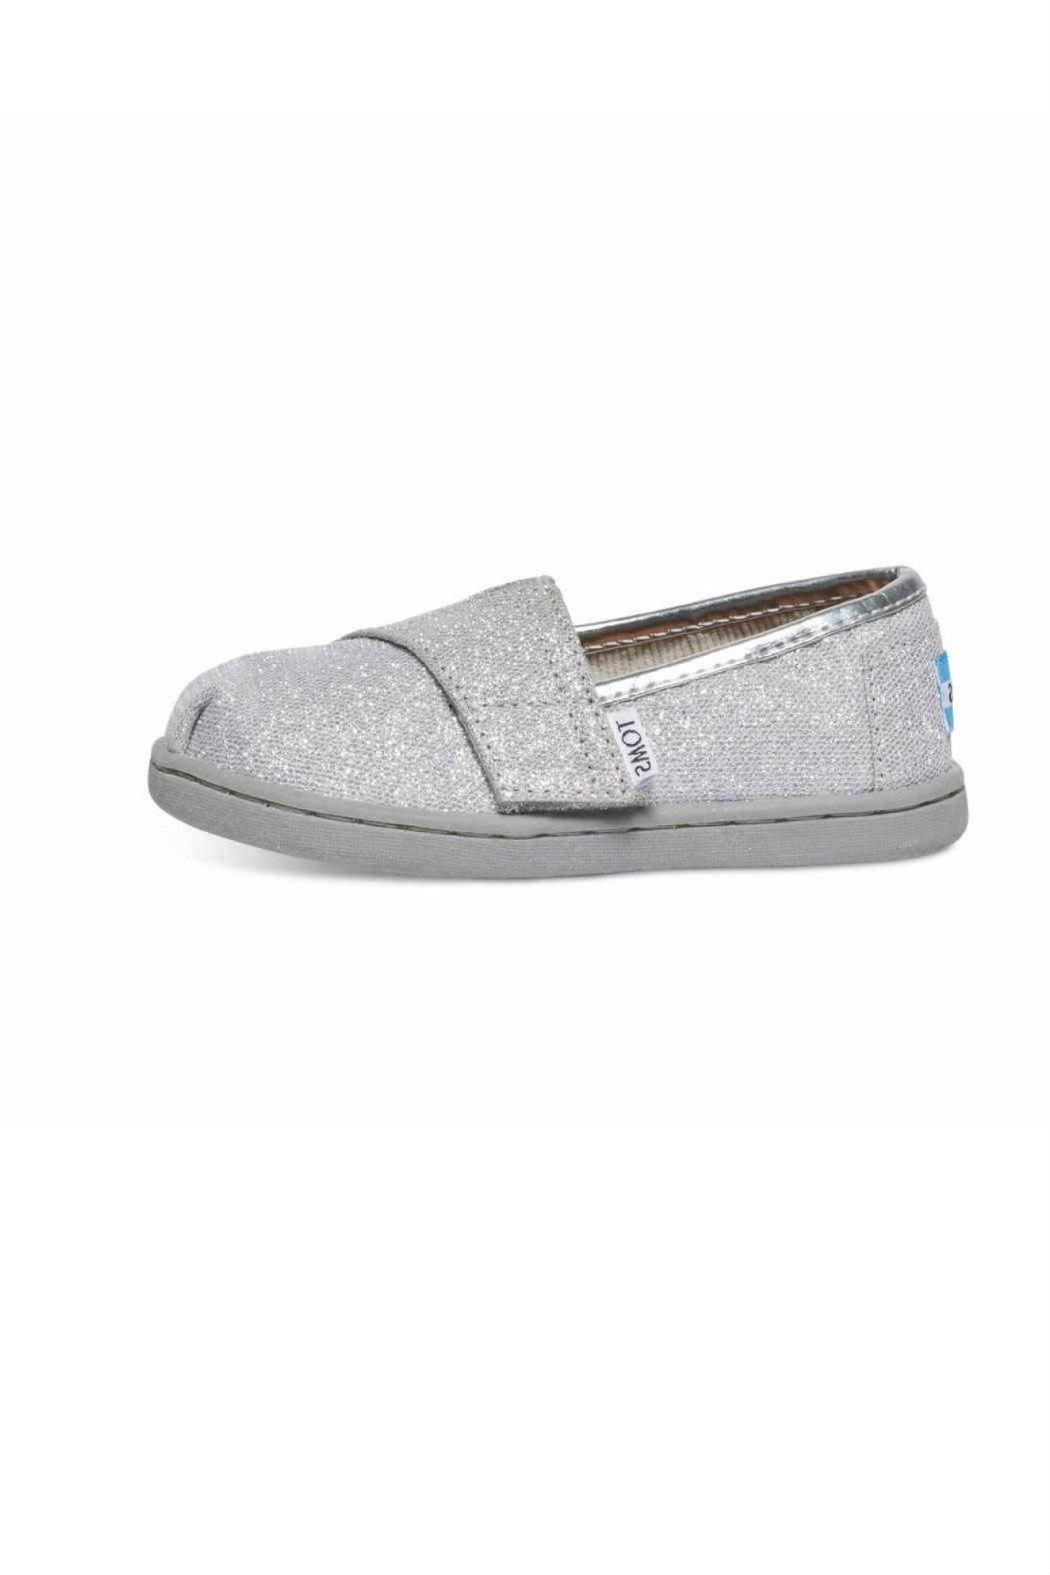 TOMS Silver Alpergata Shoes - Front Cropped Image